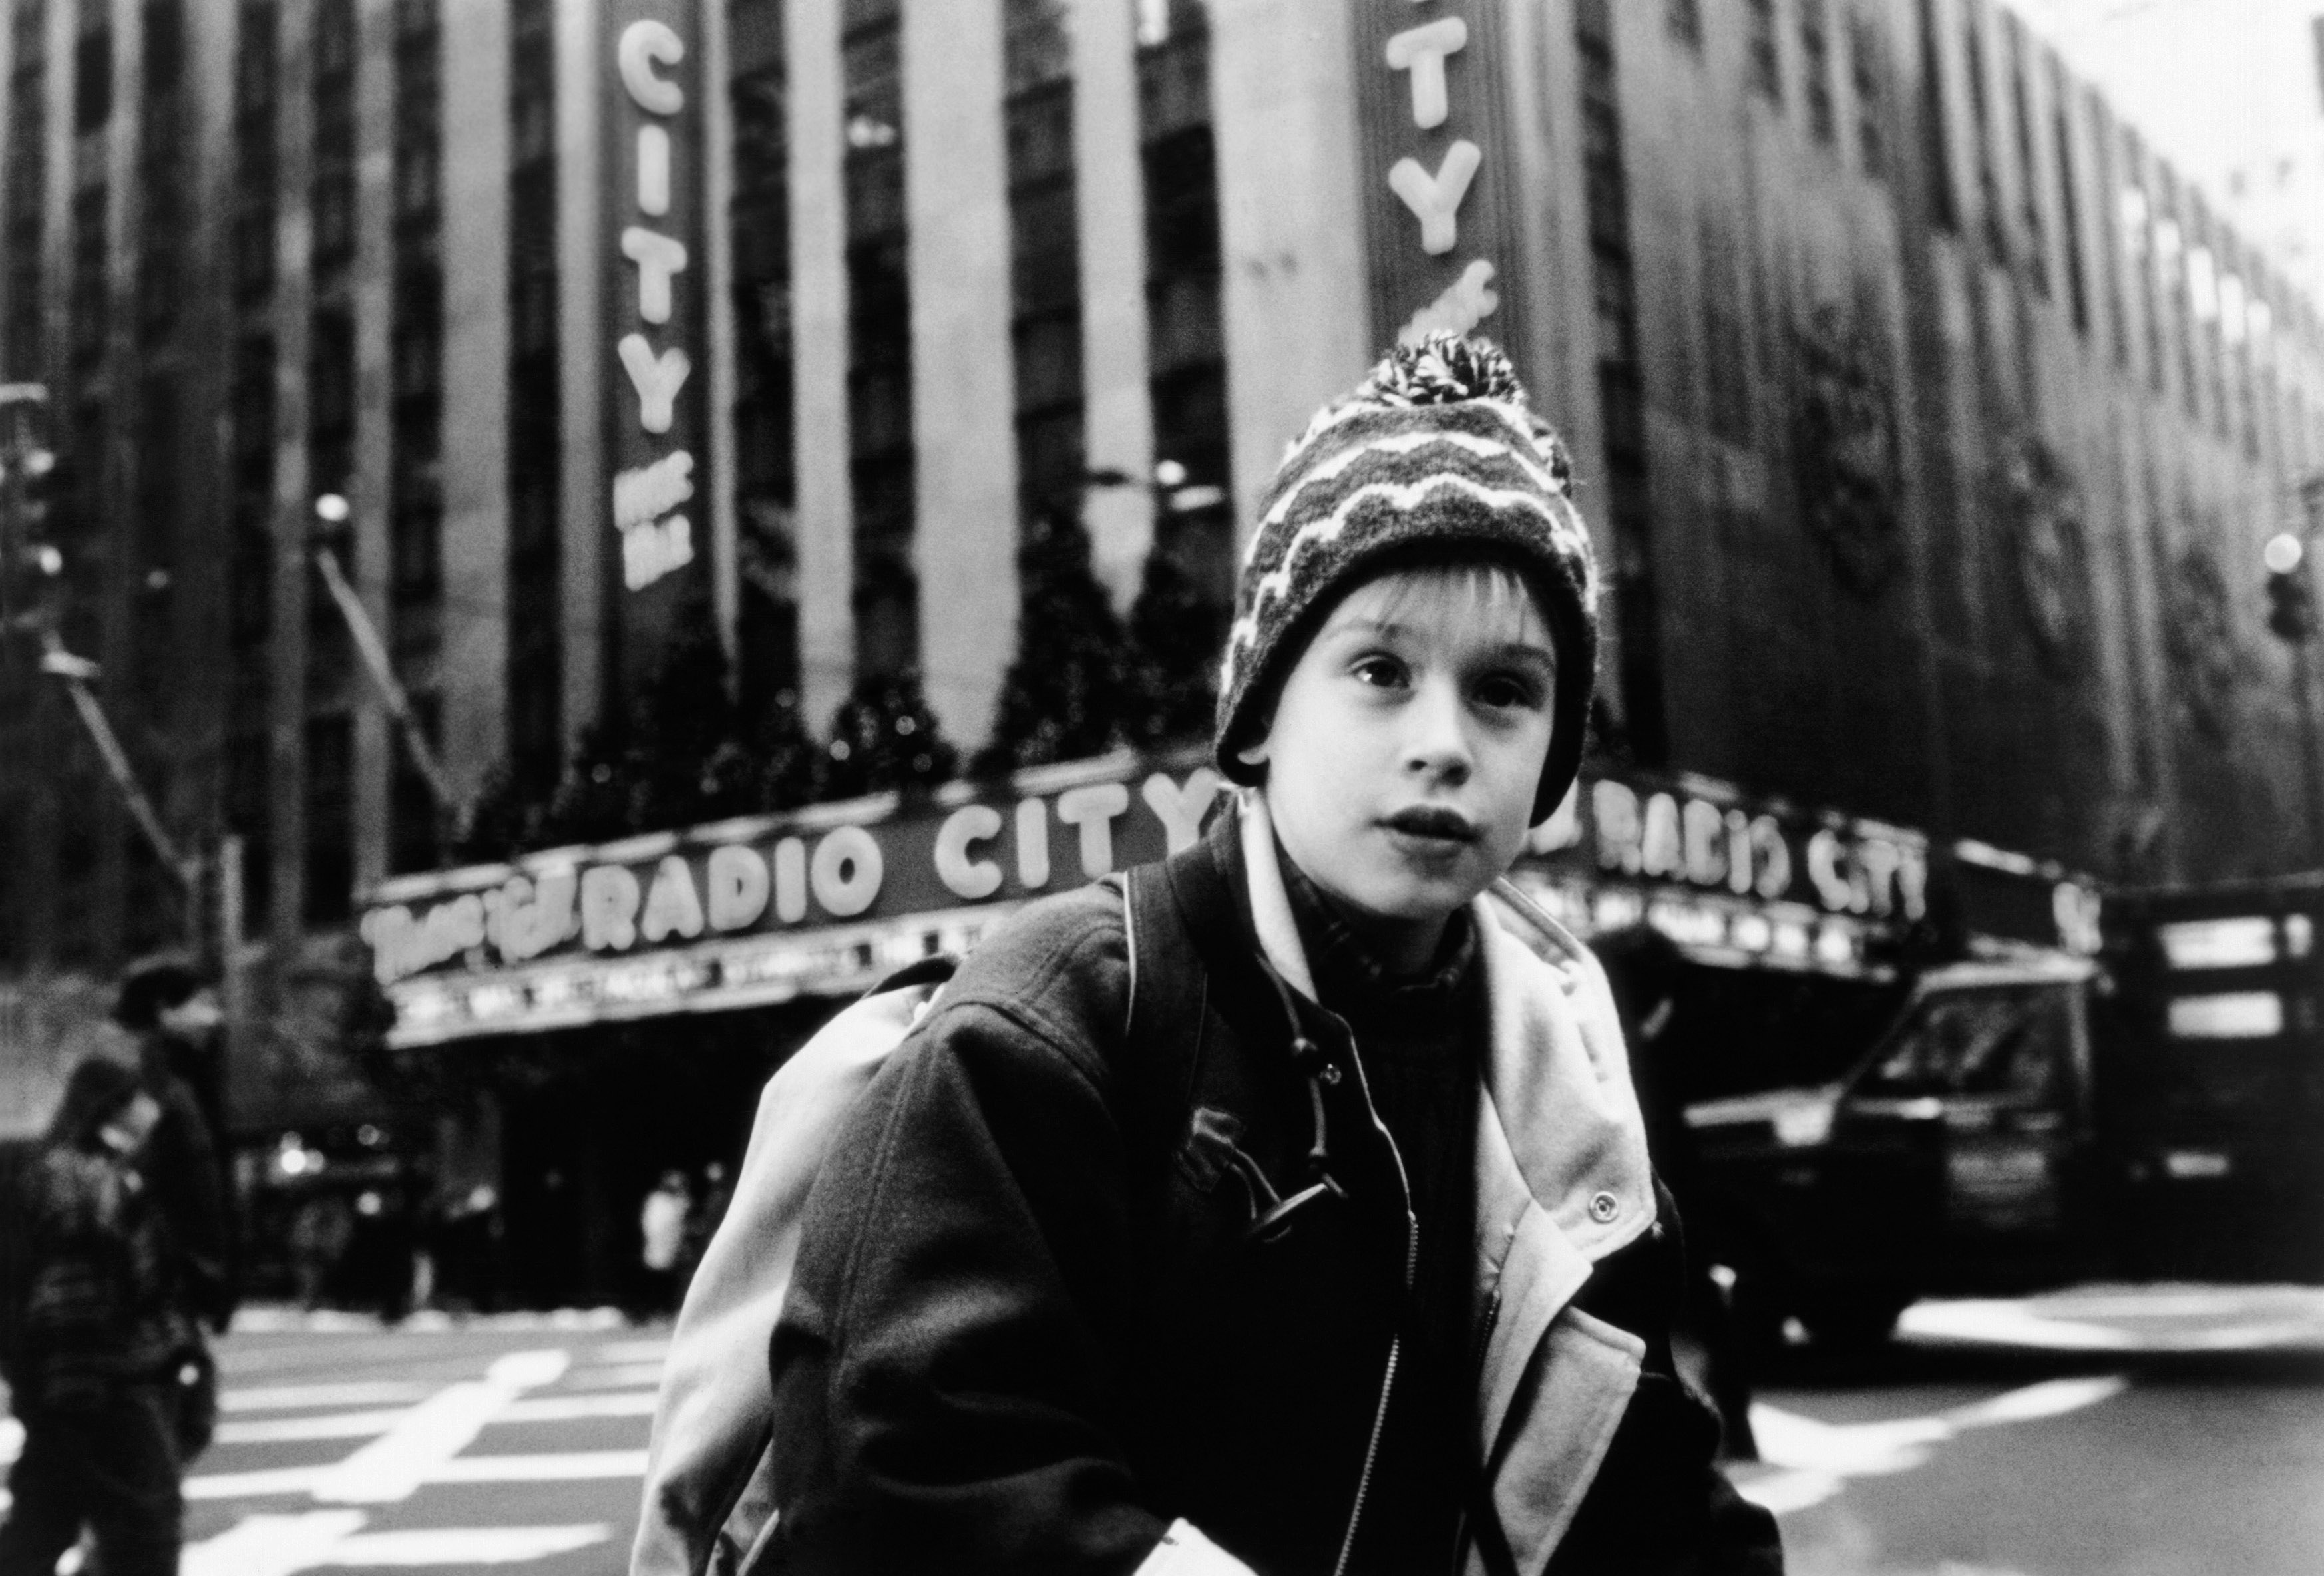 A boy in outdoor winter clothing crosses a city street. The building in the background has a sign that reads Radio City.